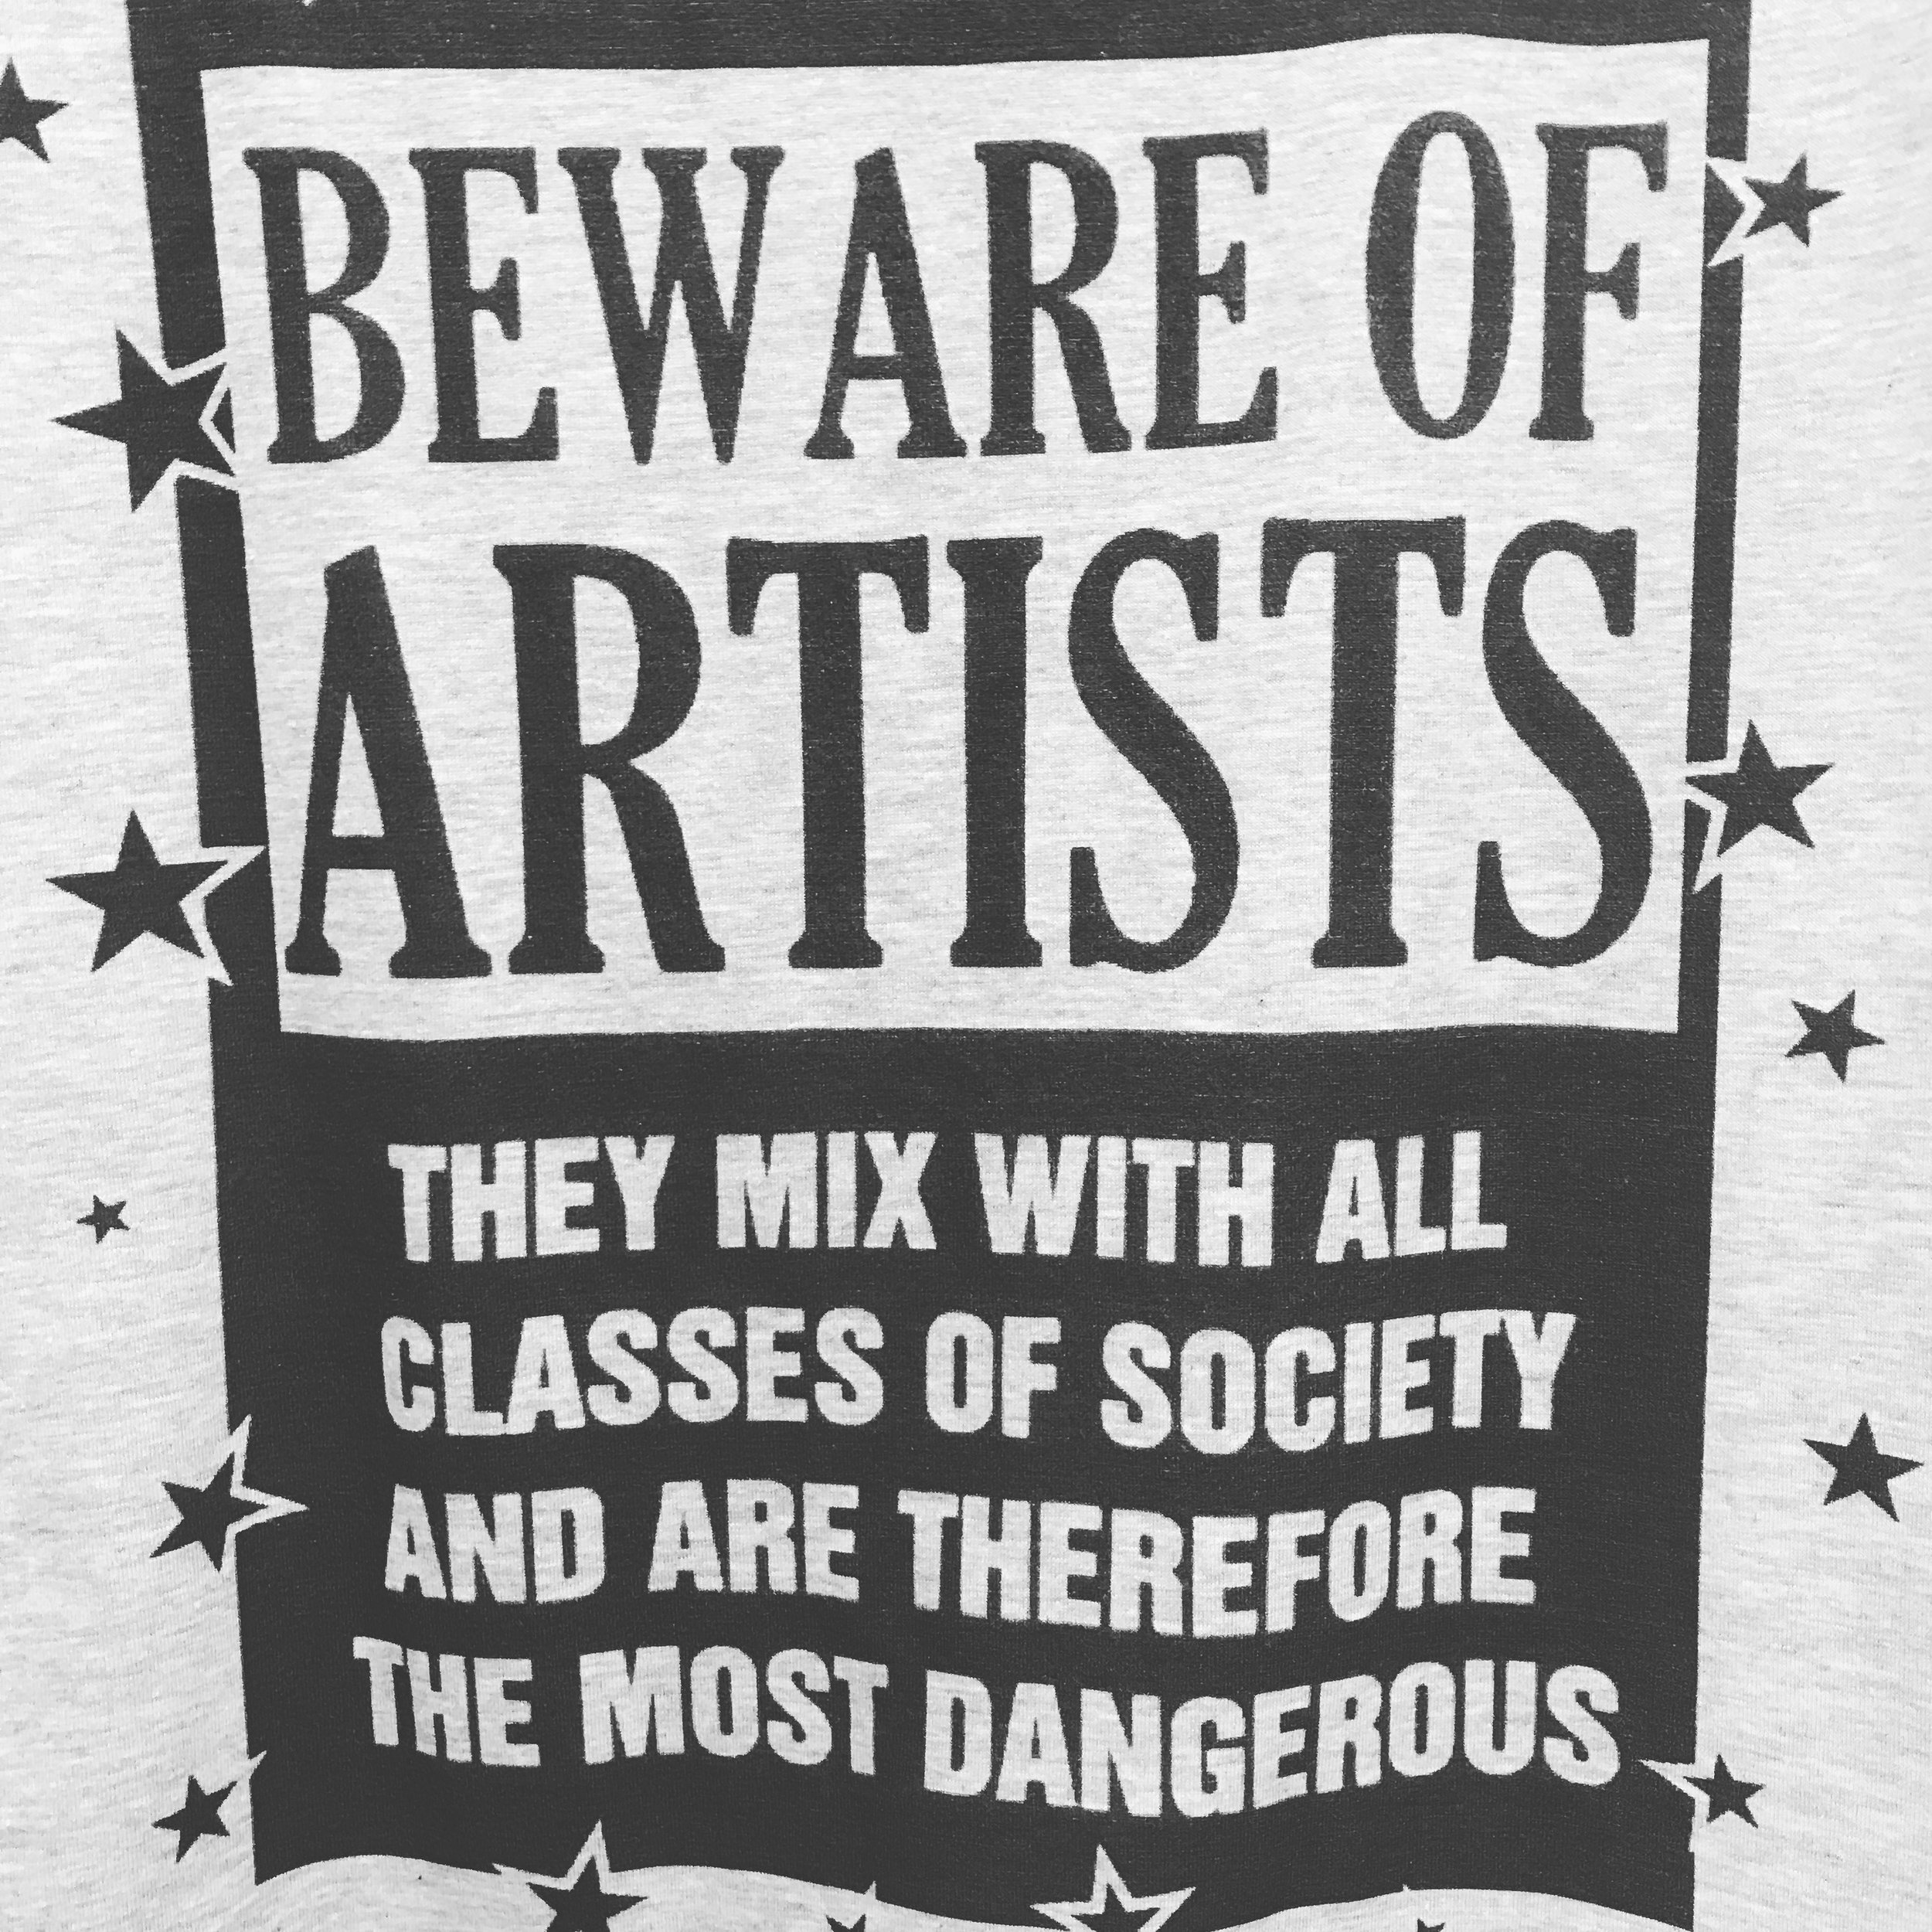 Spotted on a t-shirt at the Artists Cooperative in Jerome, AZ.